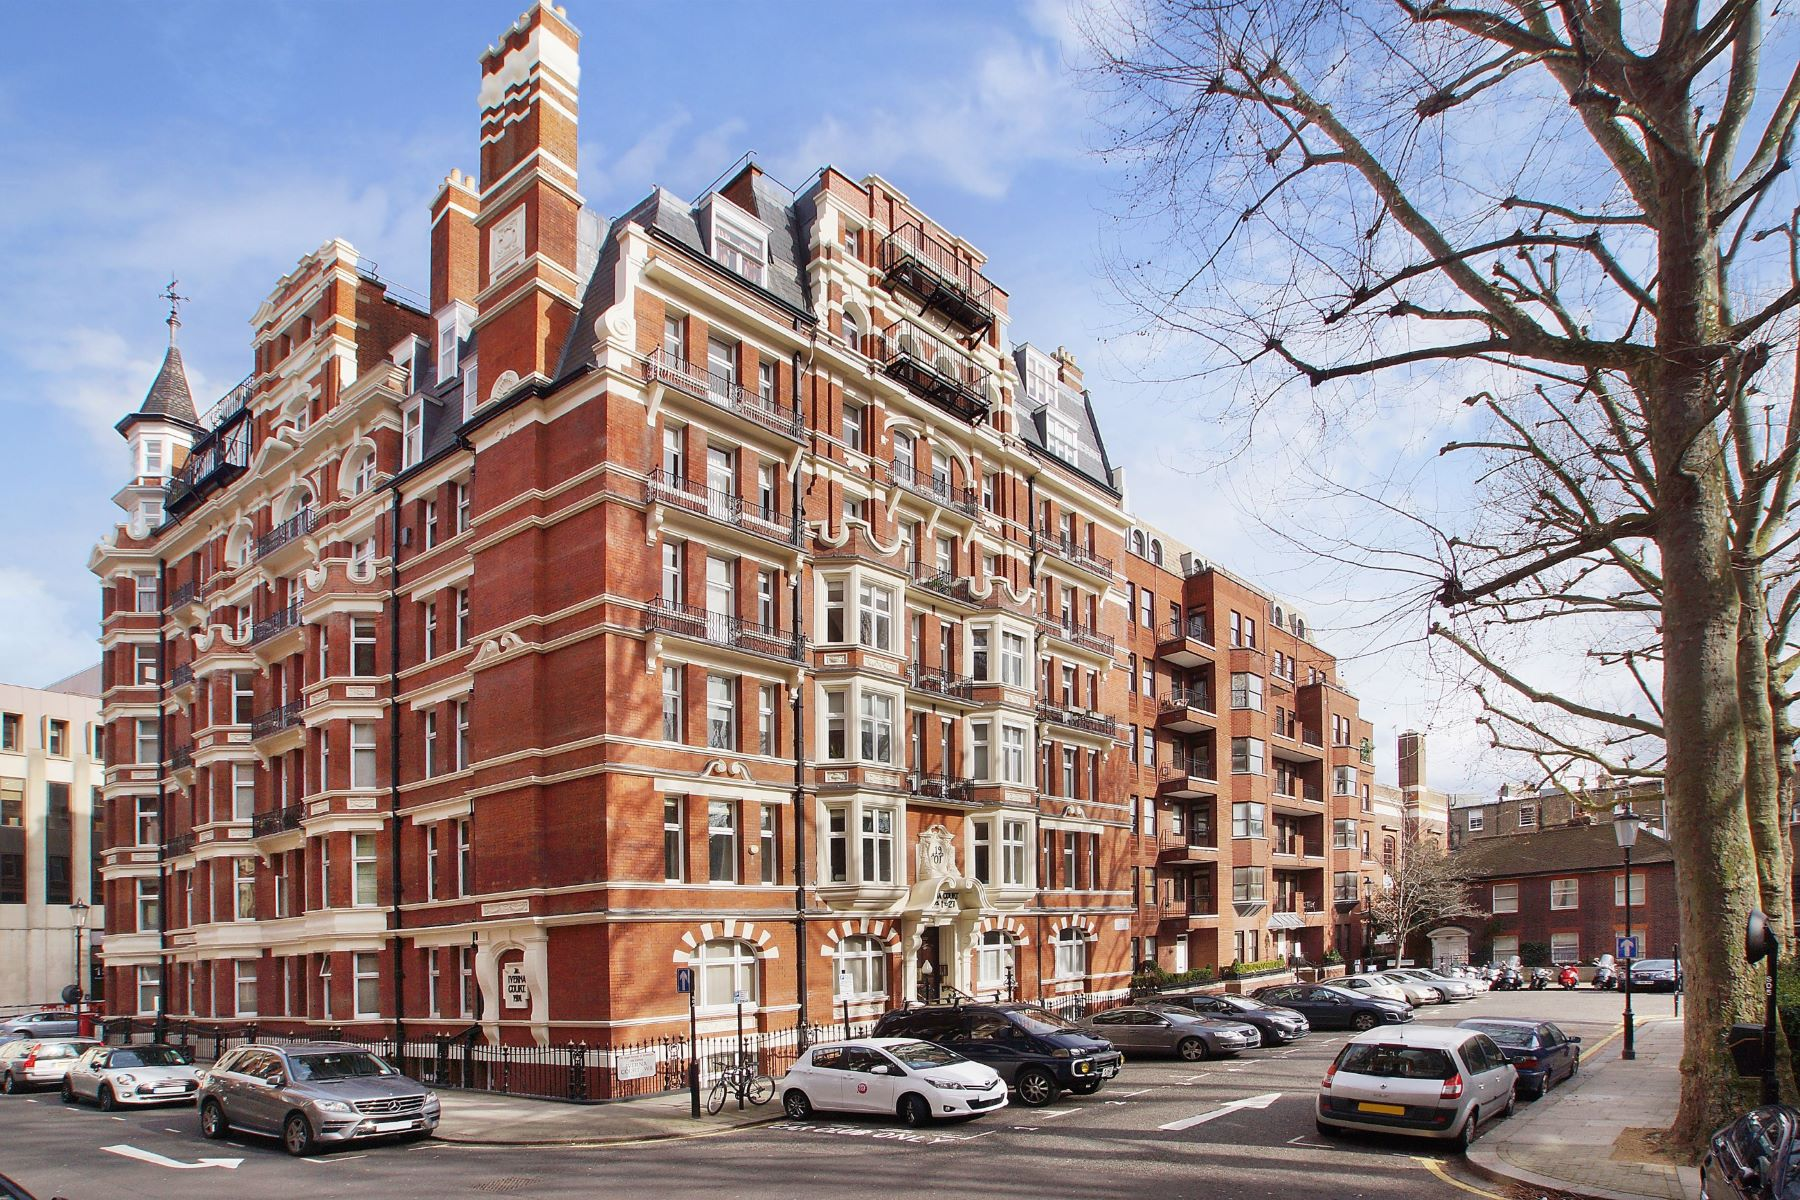 Apartment for Sale at Iverna Court, Kensington London, England, United Kingdom